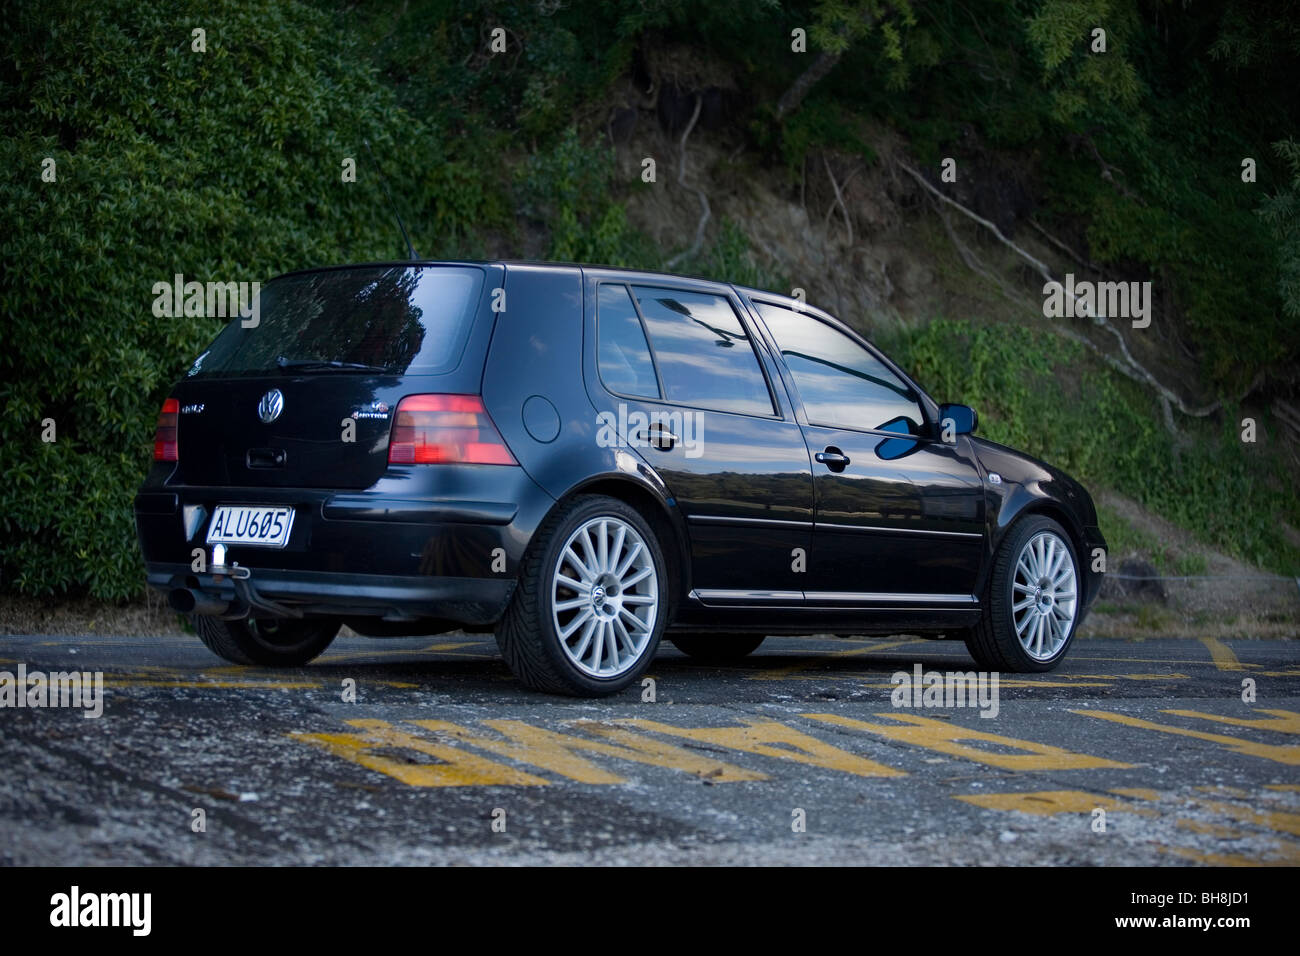 2002 black volkswagen 2 8l v6 6 speed manual 4motion golf with r32 stock photo royalty free. Black Bedroom Furniture Sets. Home Design Ideas